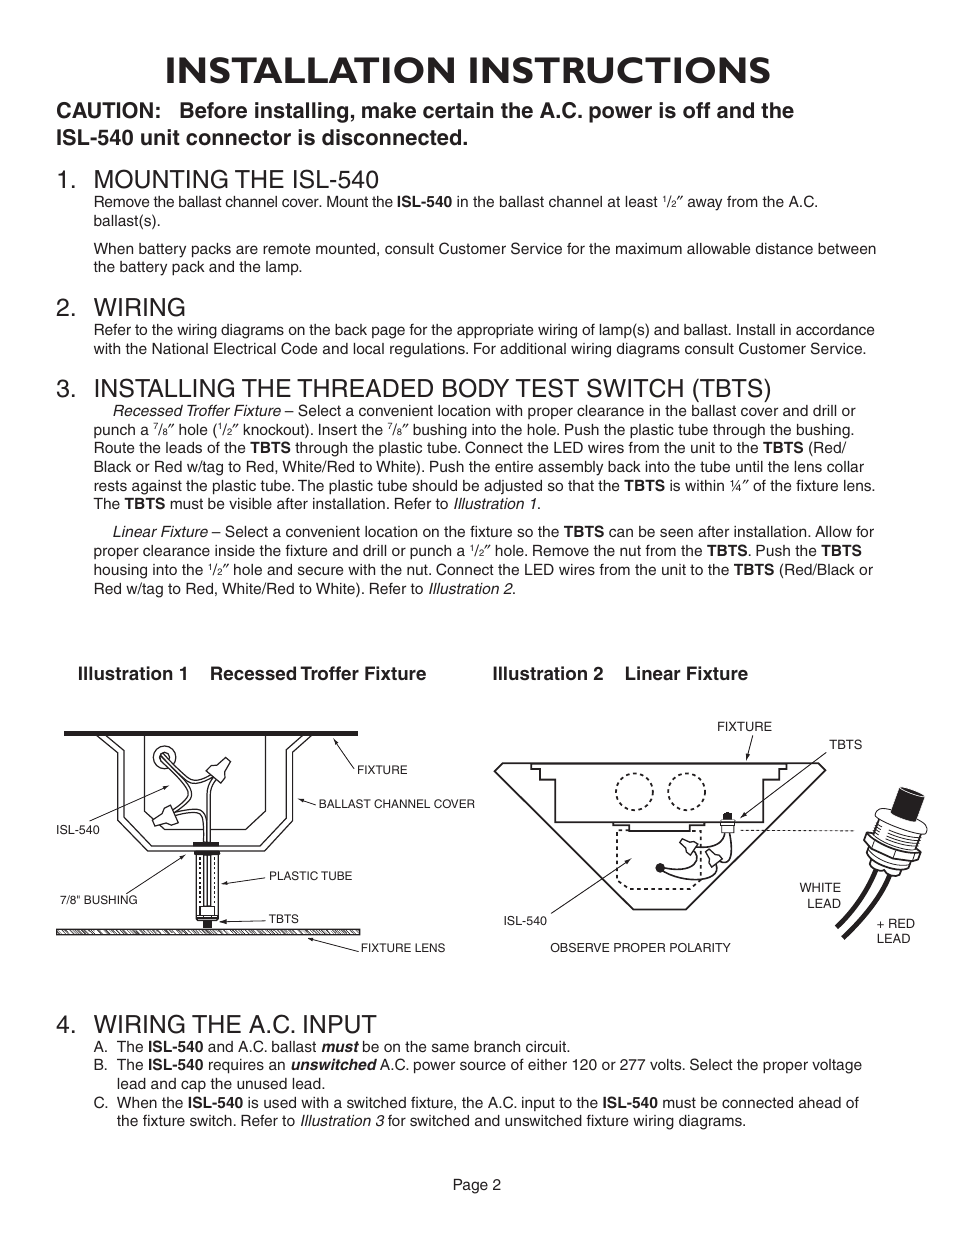 medium resolution of installation instructions mounting the isl 540 wiring iota isl 540 35w user manual page 2 5